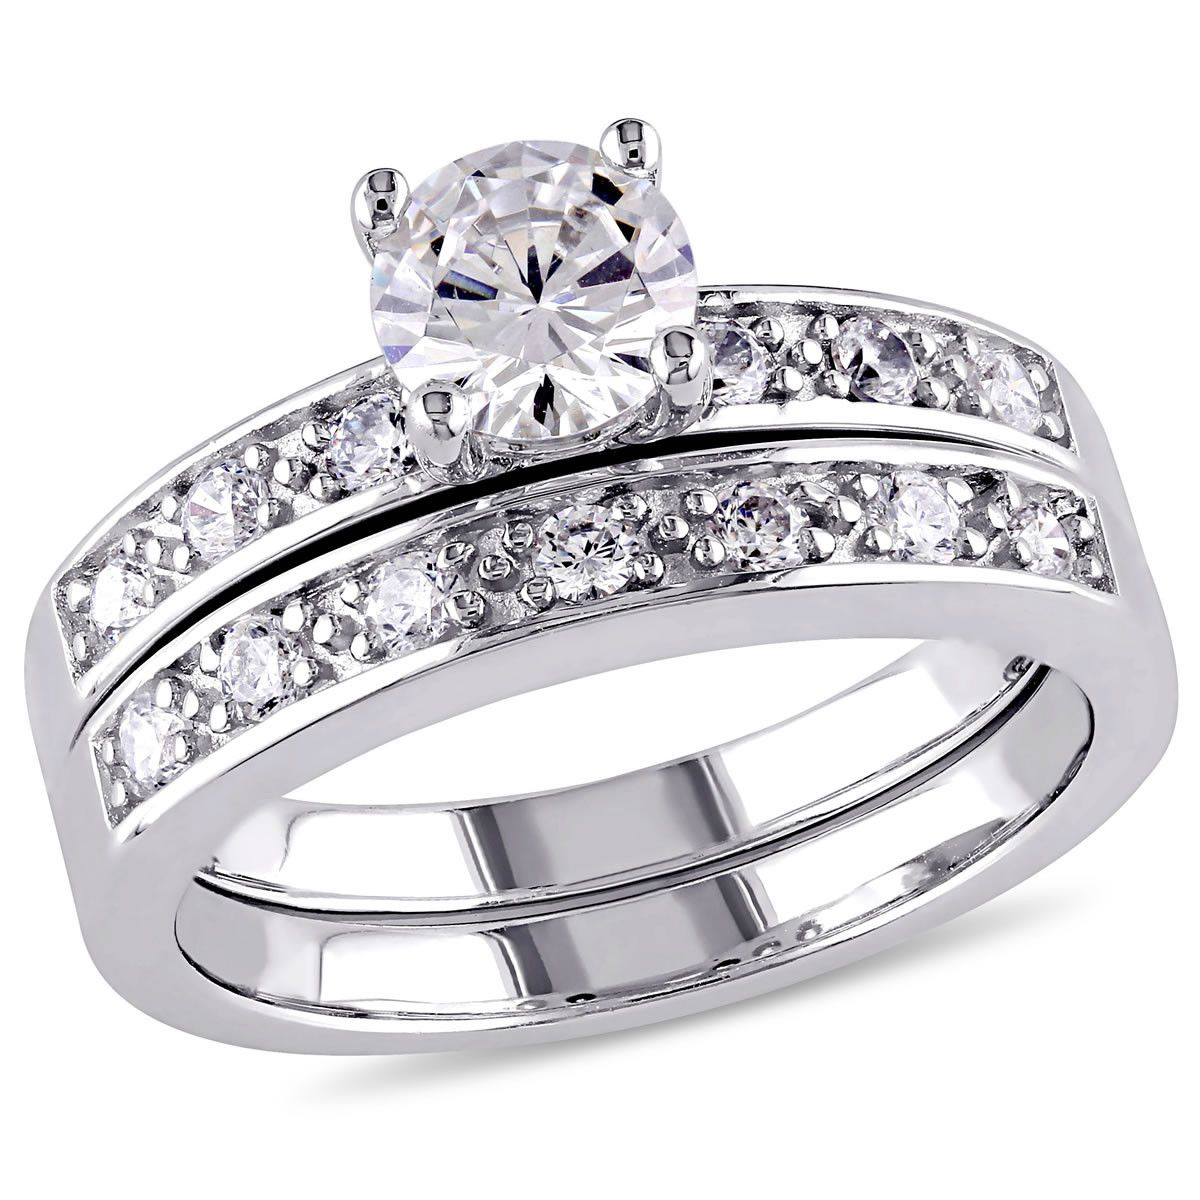 2 1/3 tgw White Cubic Zirconia Bridal Set Ring in Sterling